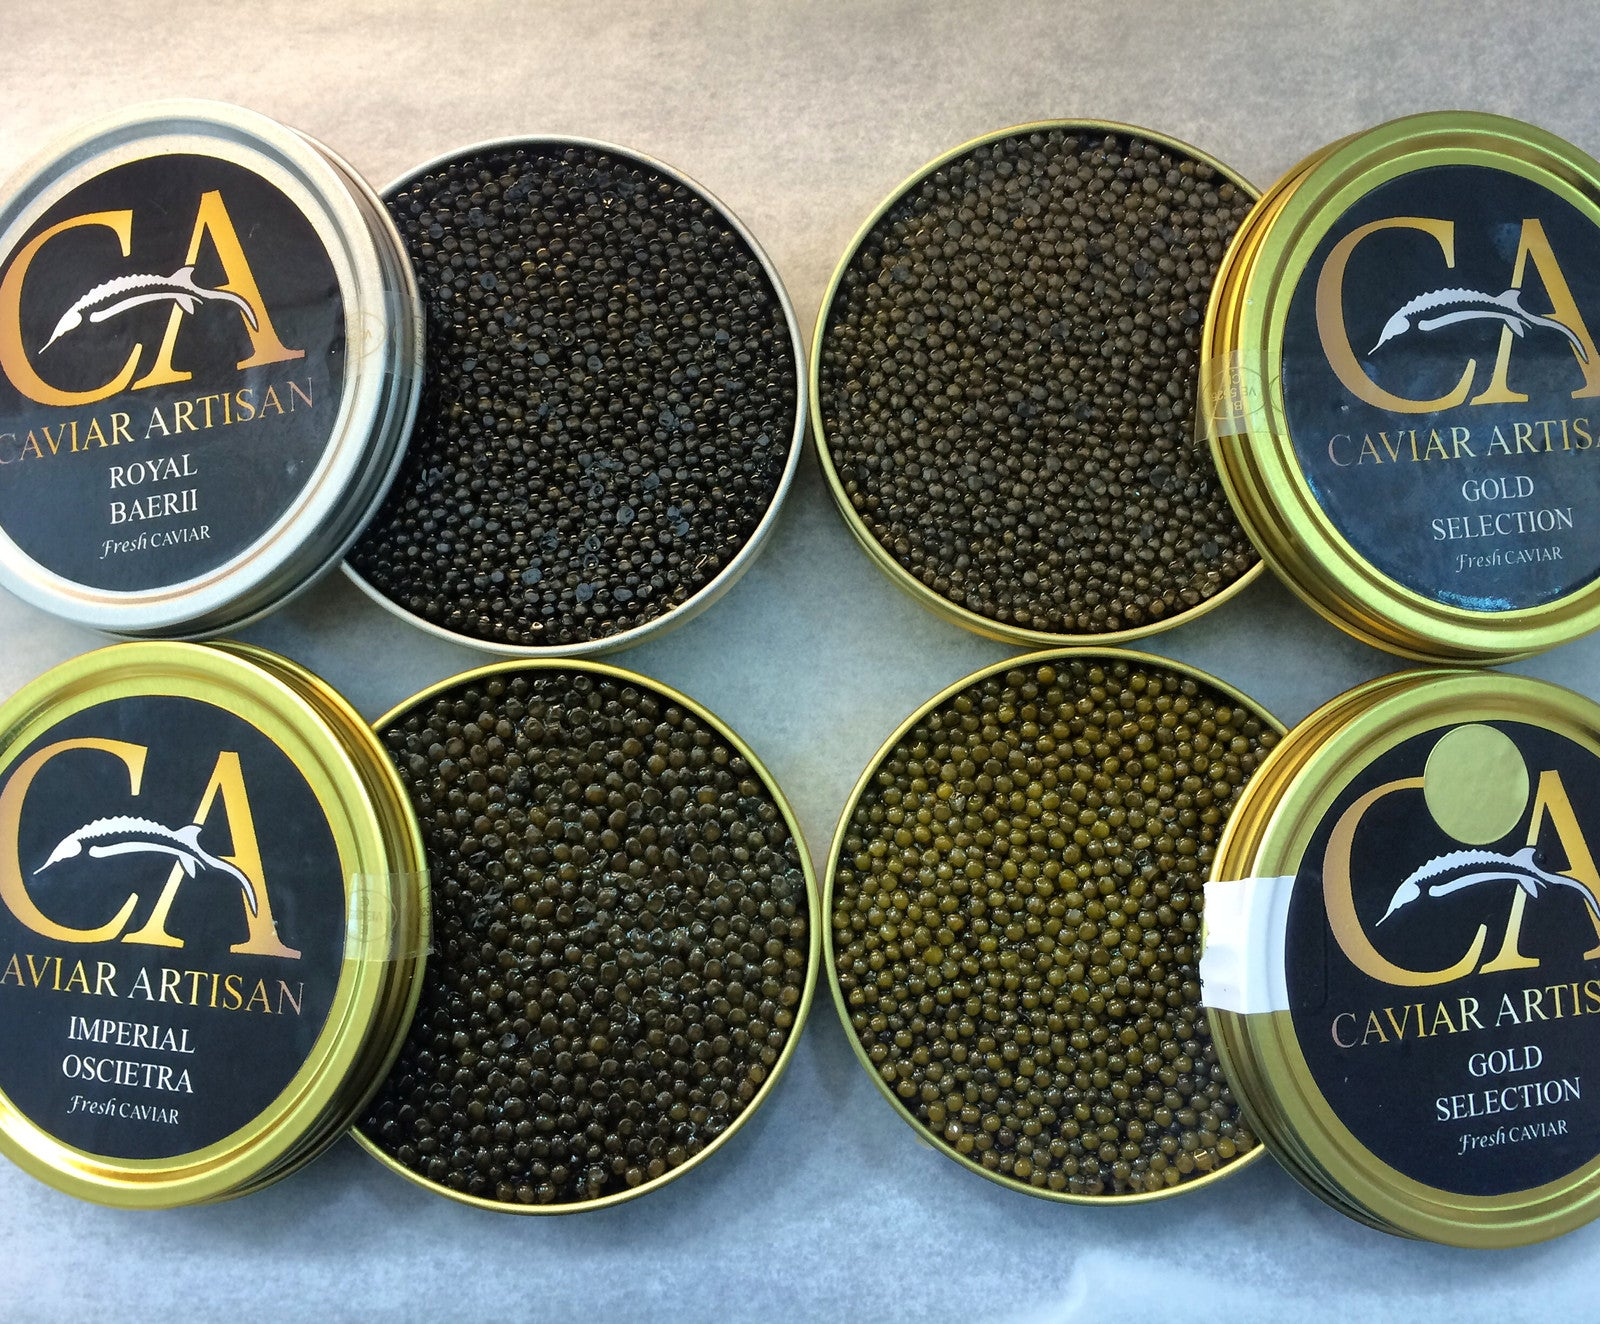 caviar online in the UK at Caviar artisan. On demand Food delivery service.